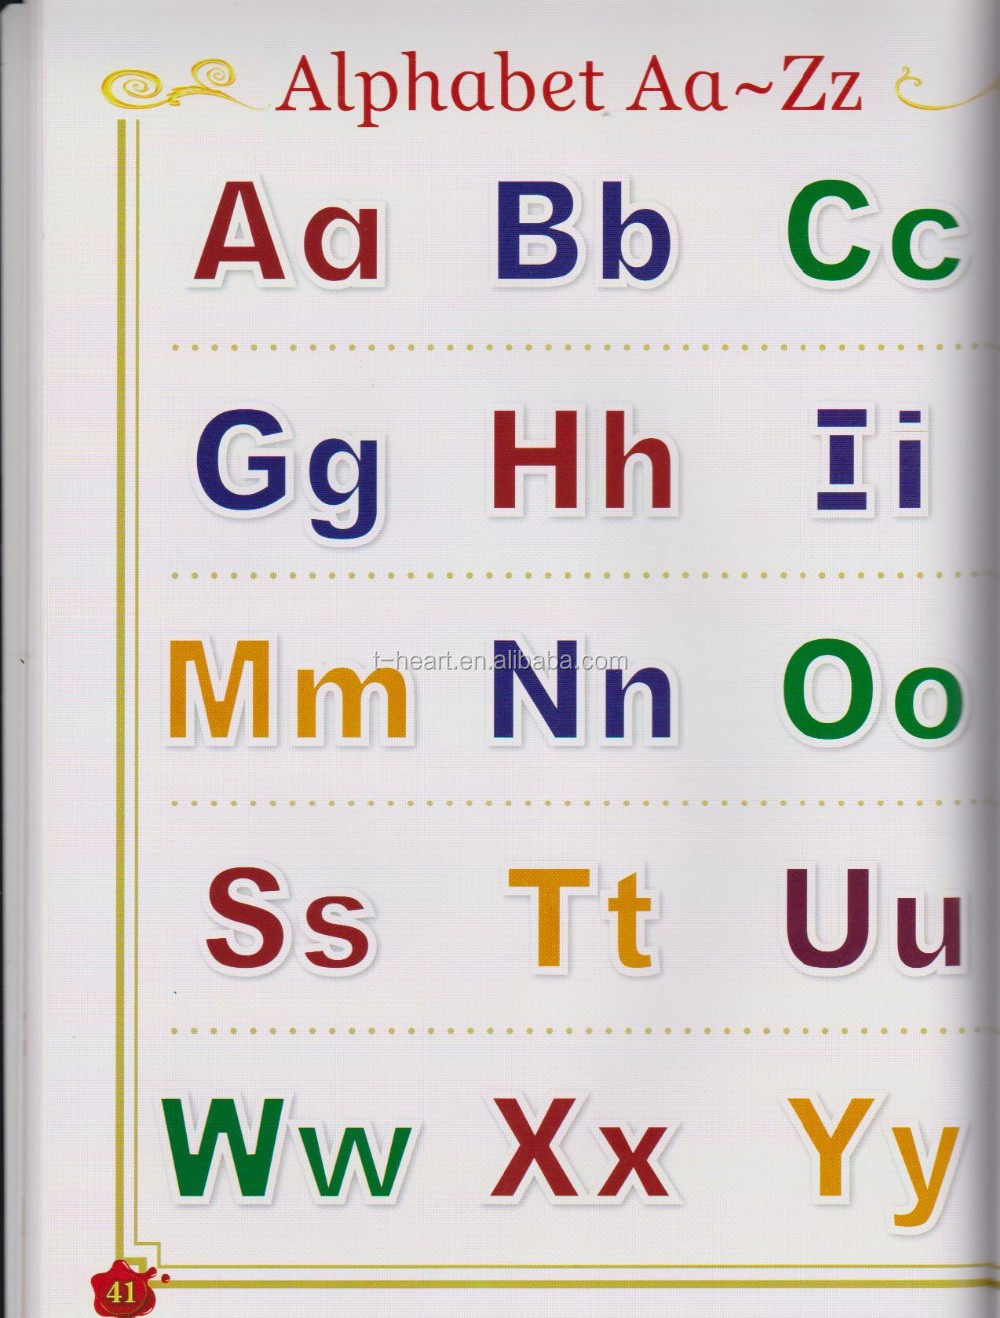 Wonderful English book for children learning ABC